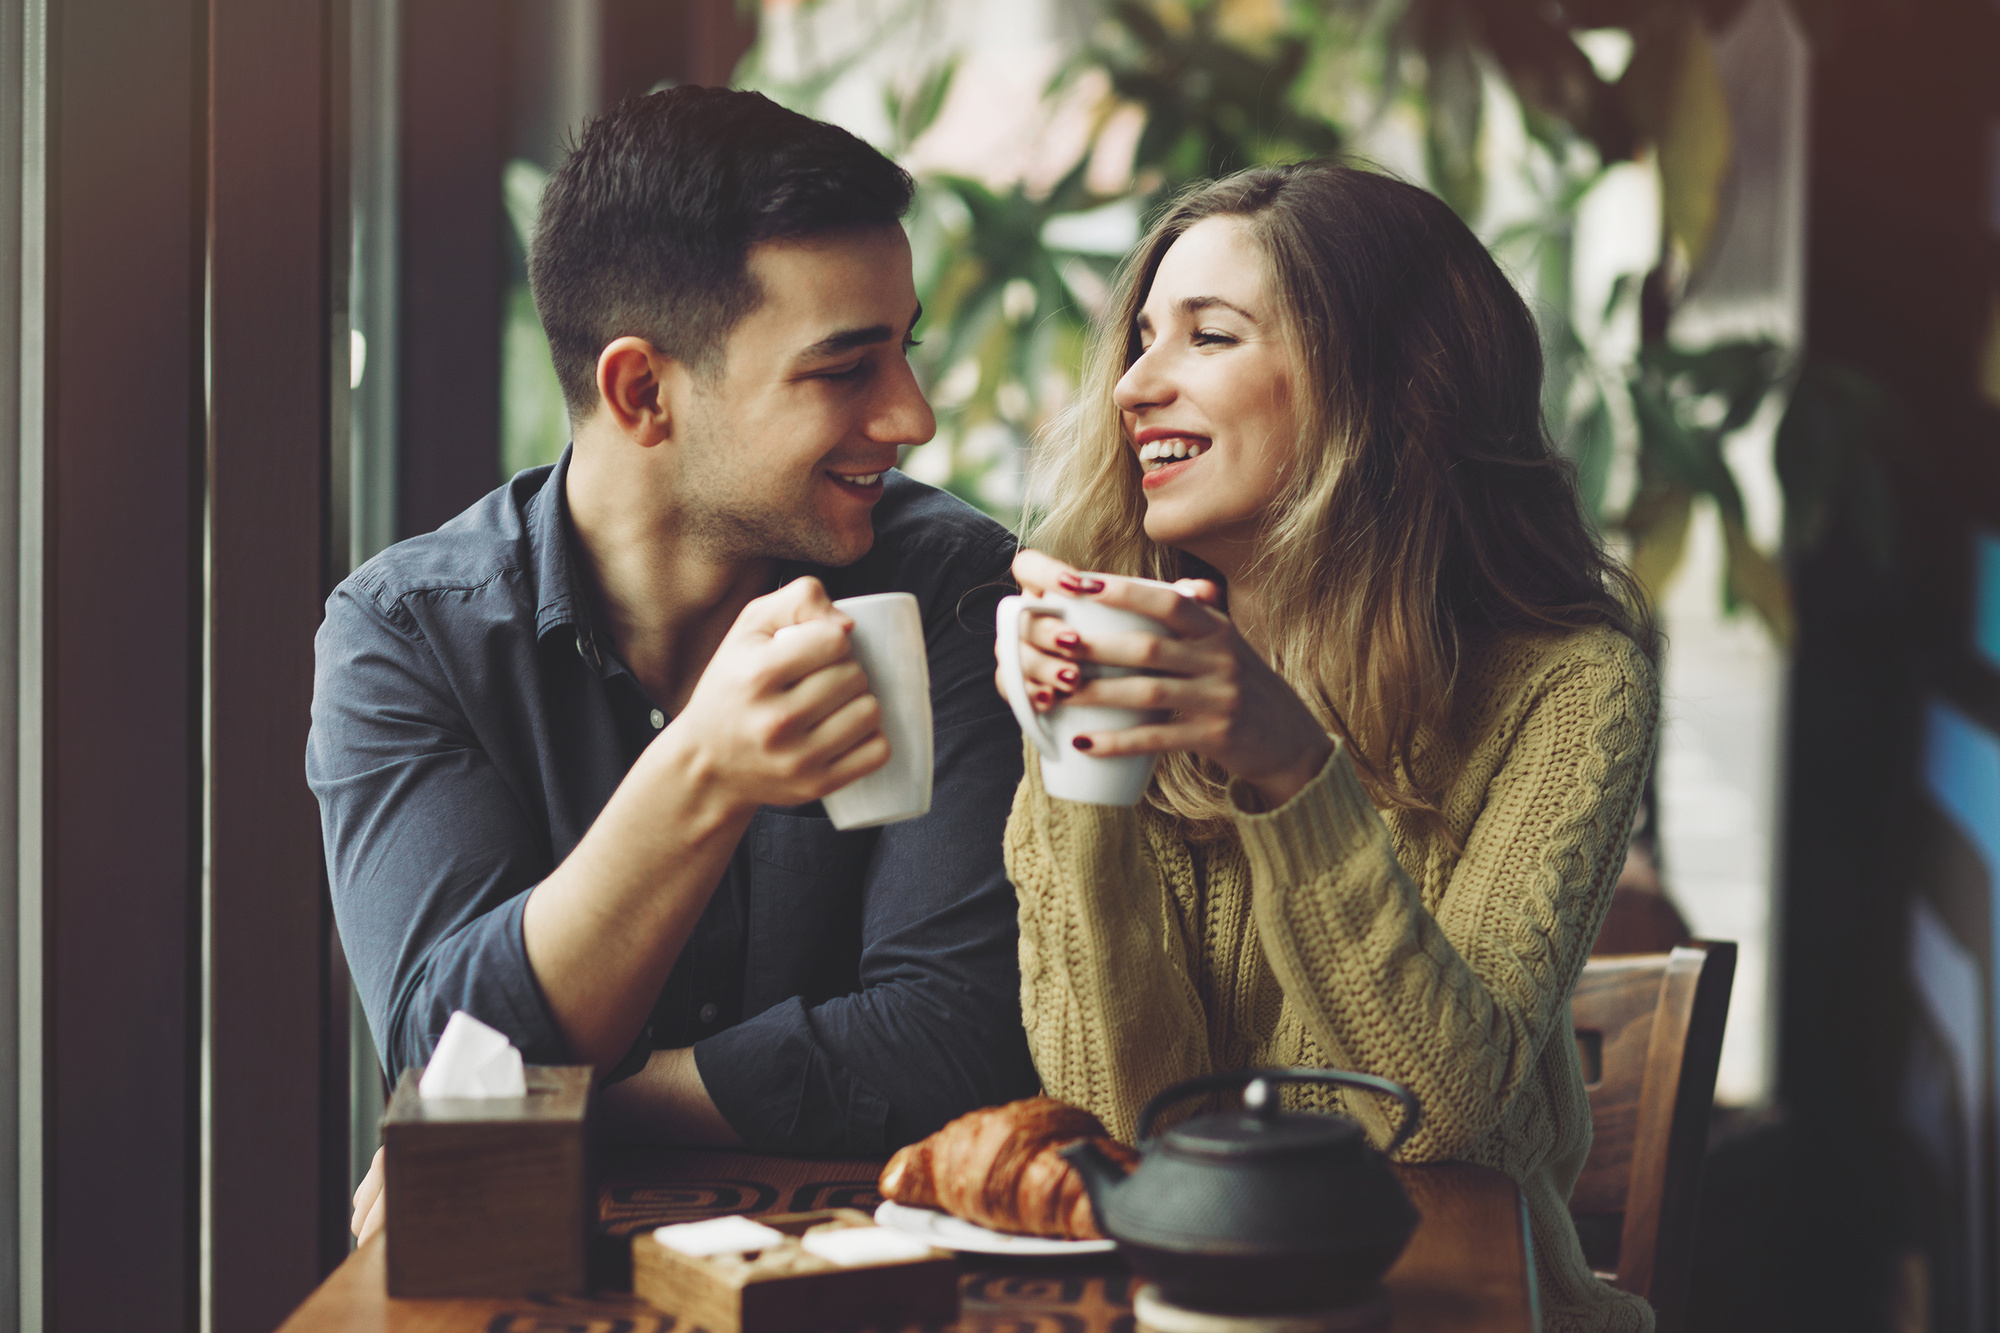 Intimate conversation starters for couples